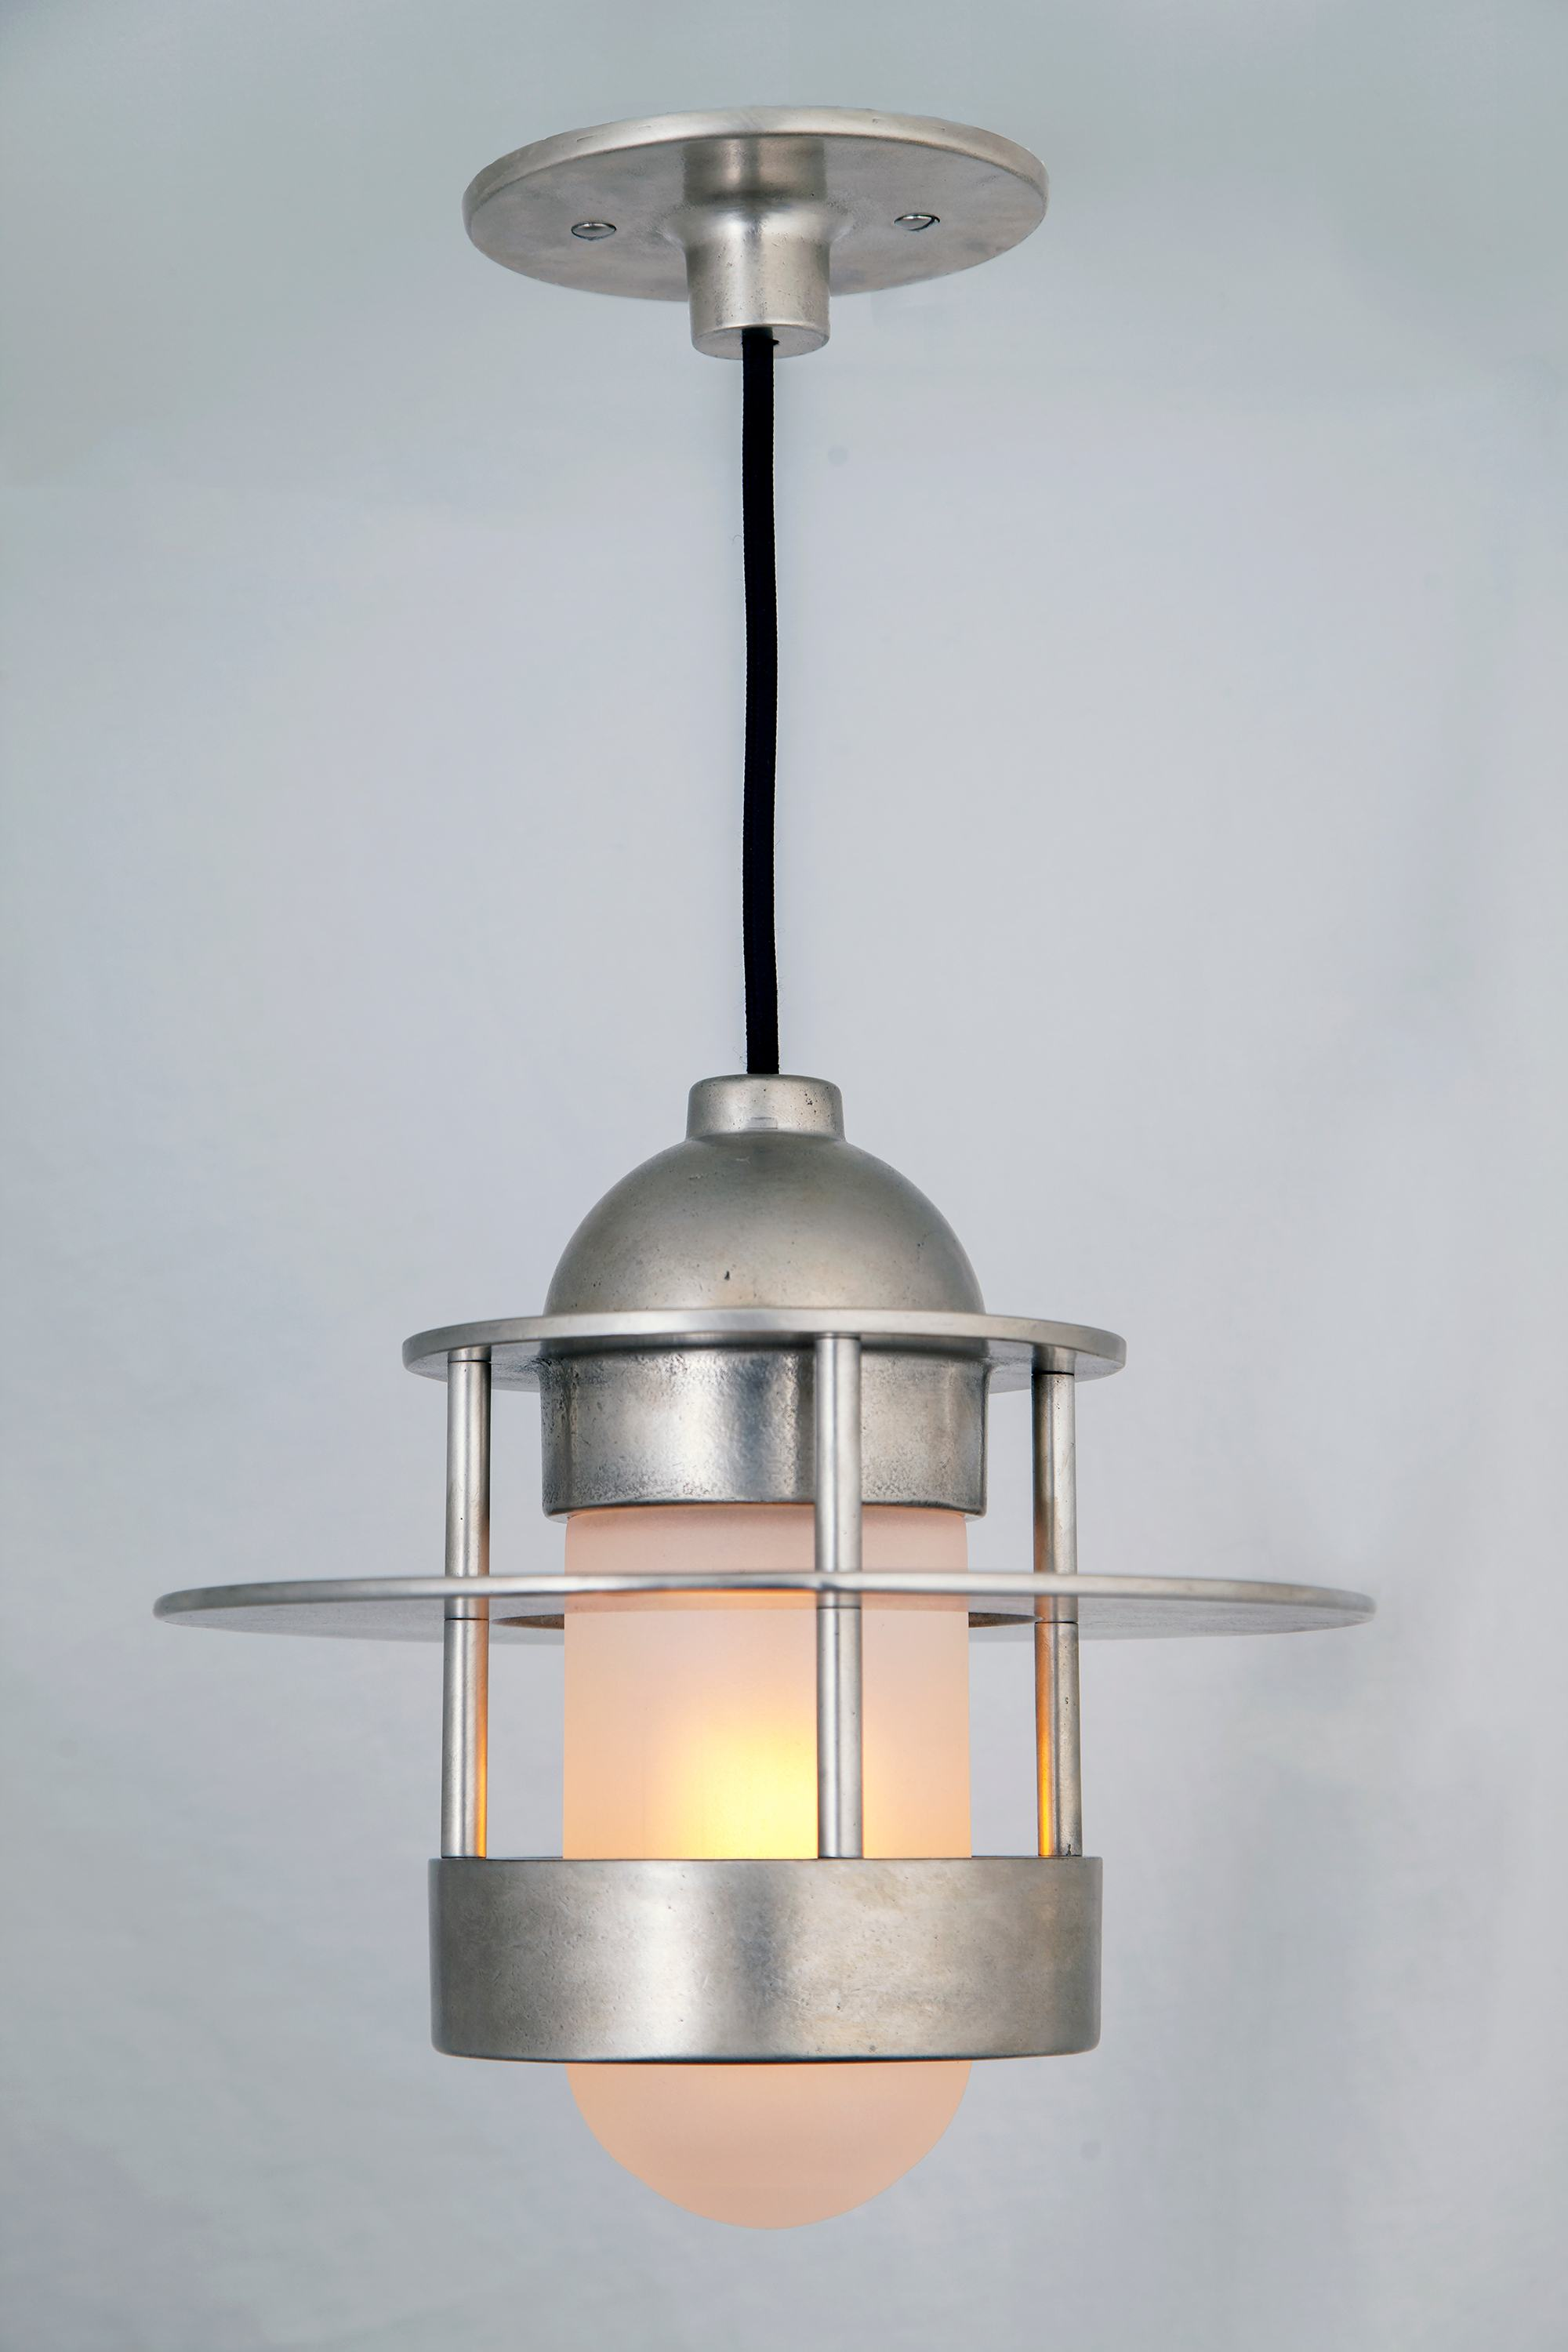 5 hand crafted lighting fixtures by sun valley bronze shown in a new polished silicon bronze sp finish the hudson pendant is available in either clear or frosted glass with multiple color cord options arubaitofo Gallery